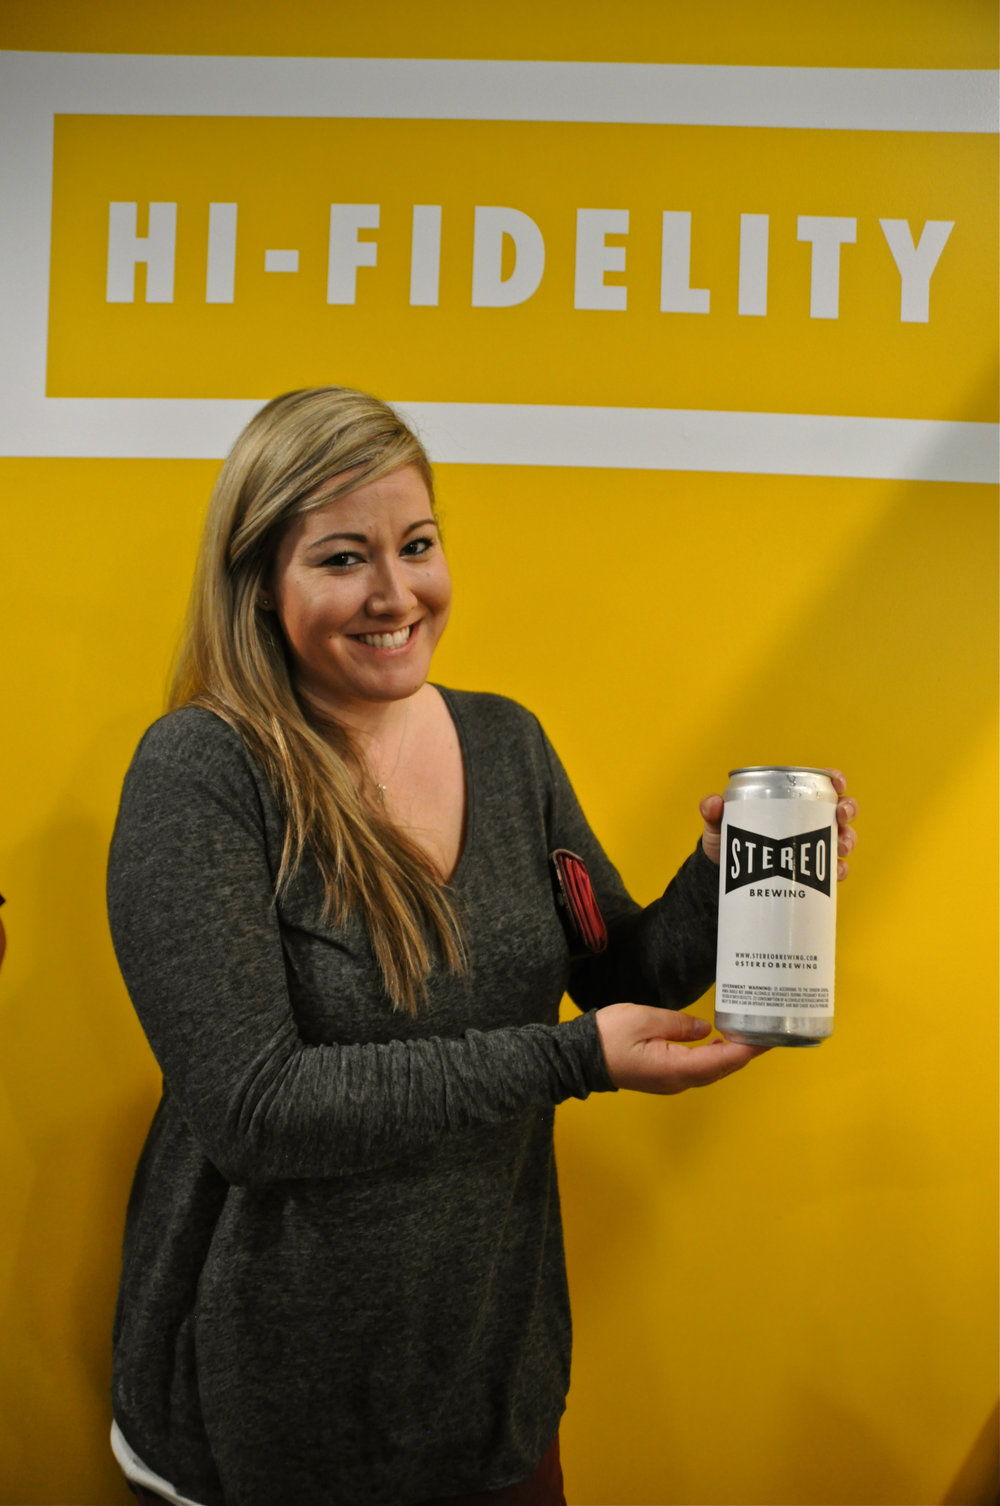 Lauren Pontious showing off Stereo's new crowlers!